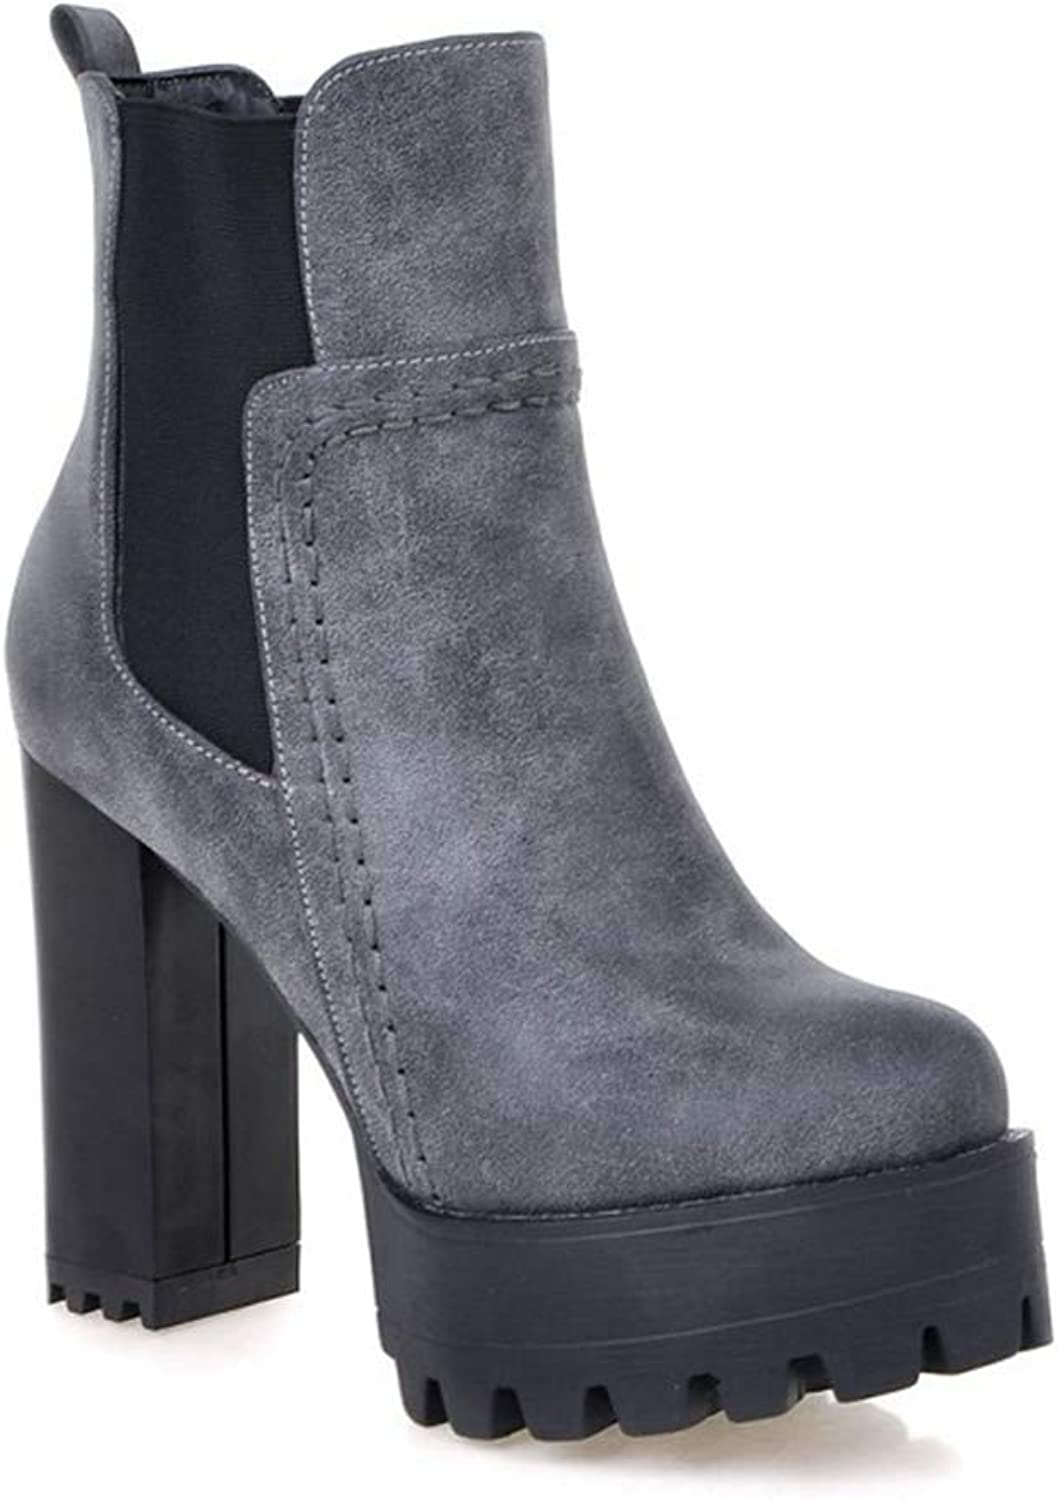 Kyle Walsh Pa Women Fashion Ankle Boots High Square Heel Round Toe Platform Autumn Winter Booties